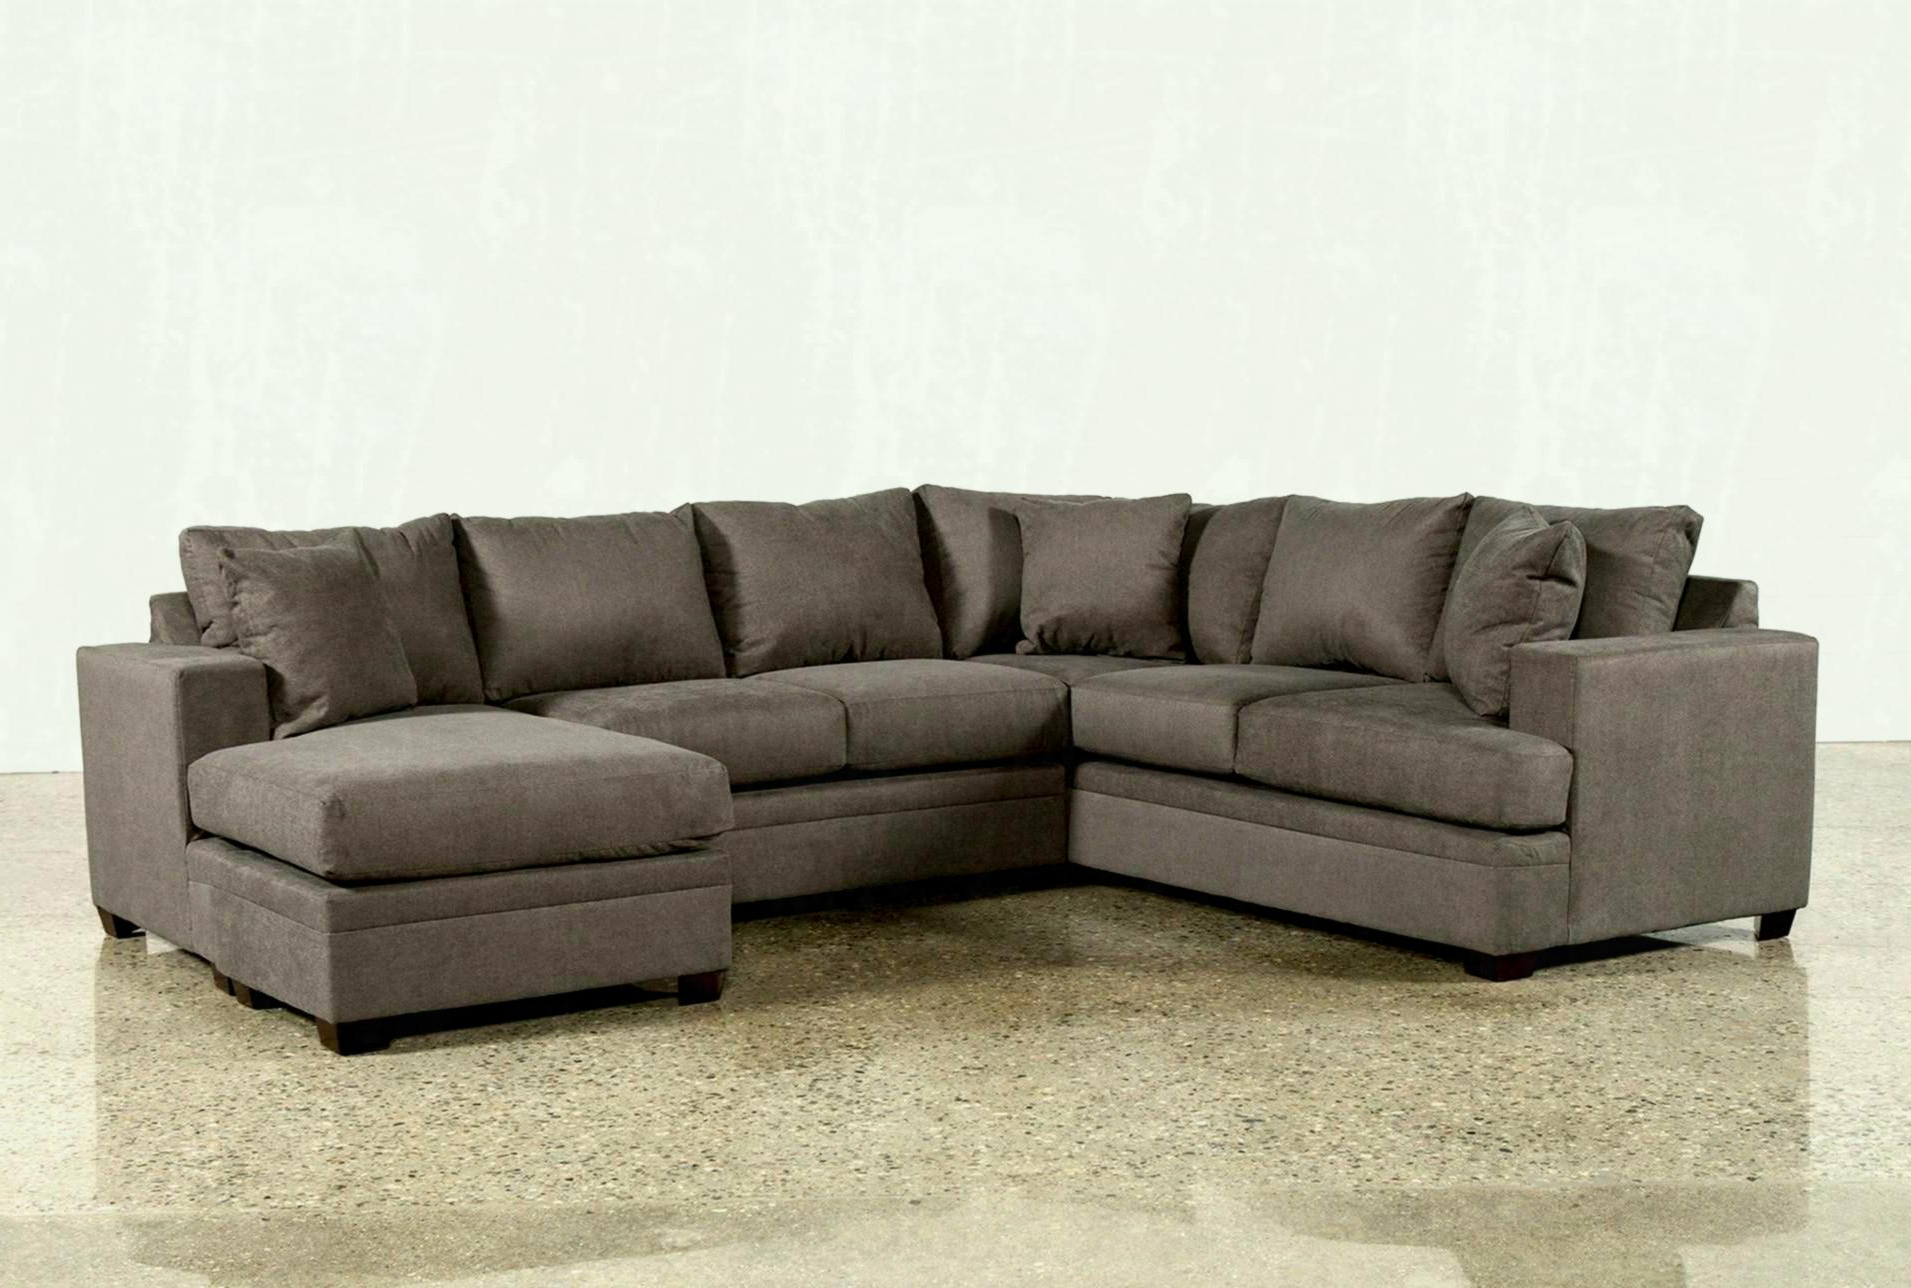 Most Recent Lucy Grey 2 Piece Sectionals With Raf Chaise For Added To Cart Kerri Piece Sectional W Raf Chaise Living Spaces (View 10 of 20)